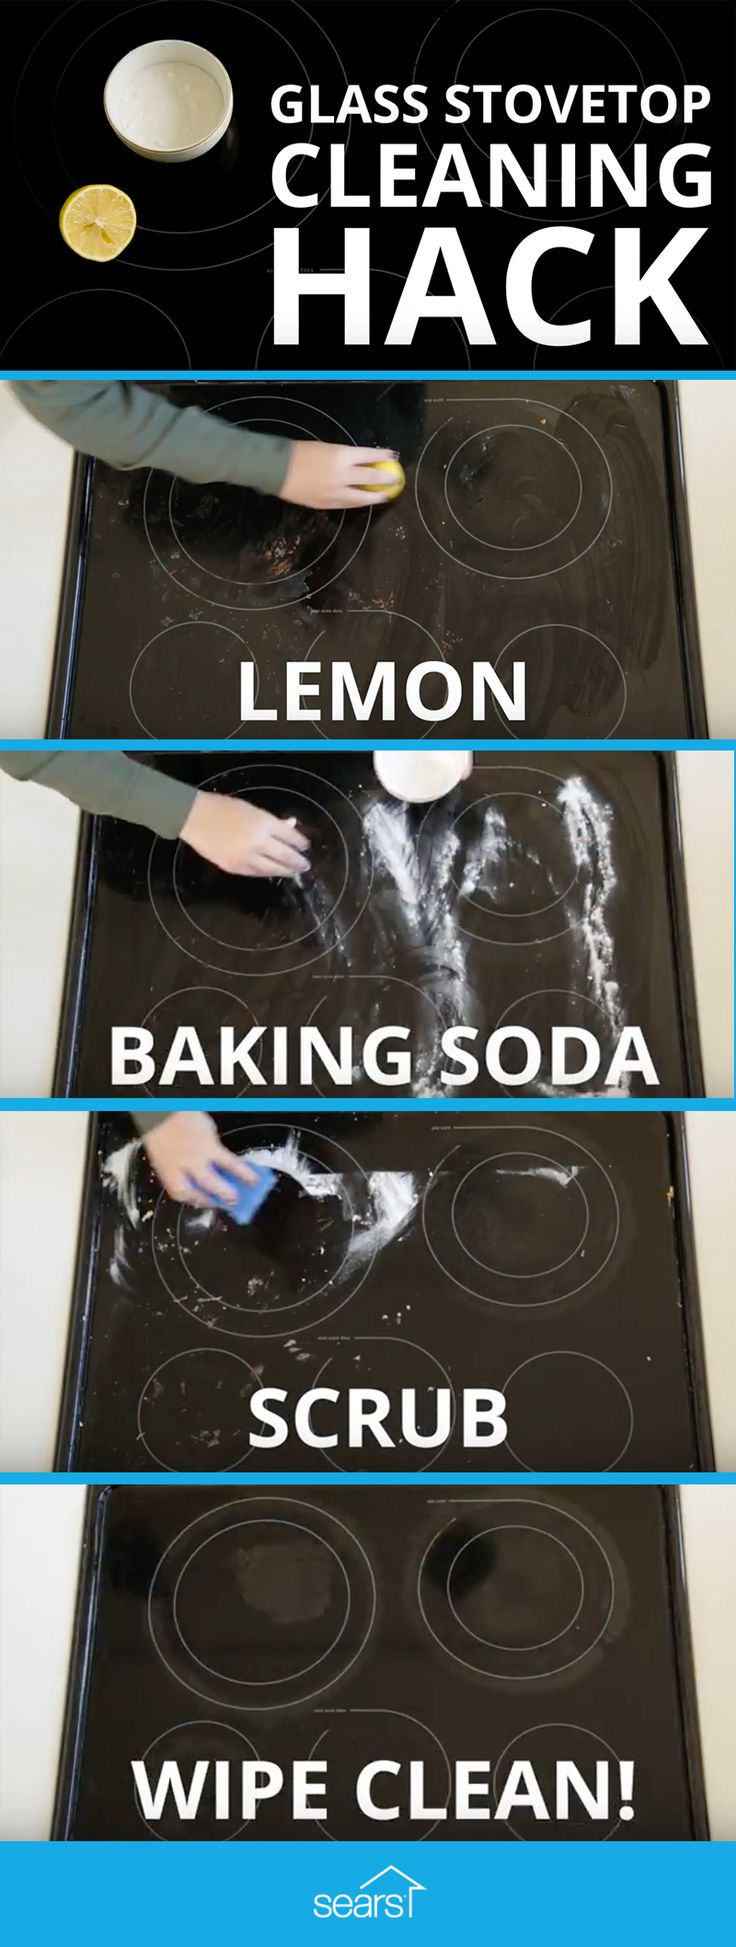 Stovetop Cleaning Hack Tested: clean with lemon and baking soda. This stovetop cleaning hack doesn't even require a cleaner — just lemon juice and baking soda. Baking soda seems to work for pretty much anything, so we're testing it to find out if it makes your stovetop sparkle. Visit the Sears Home Services blog now to watch the video and see if it really works!